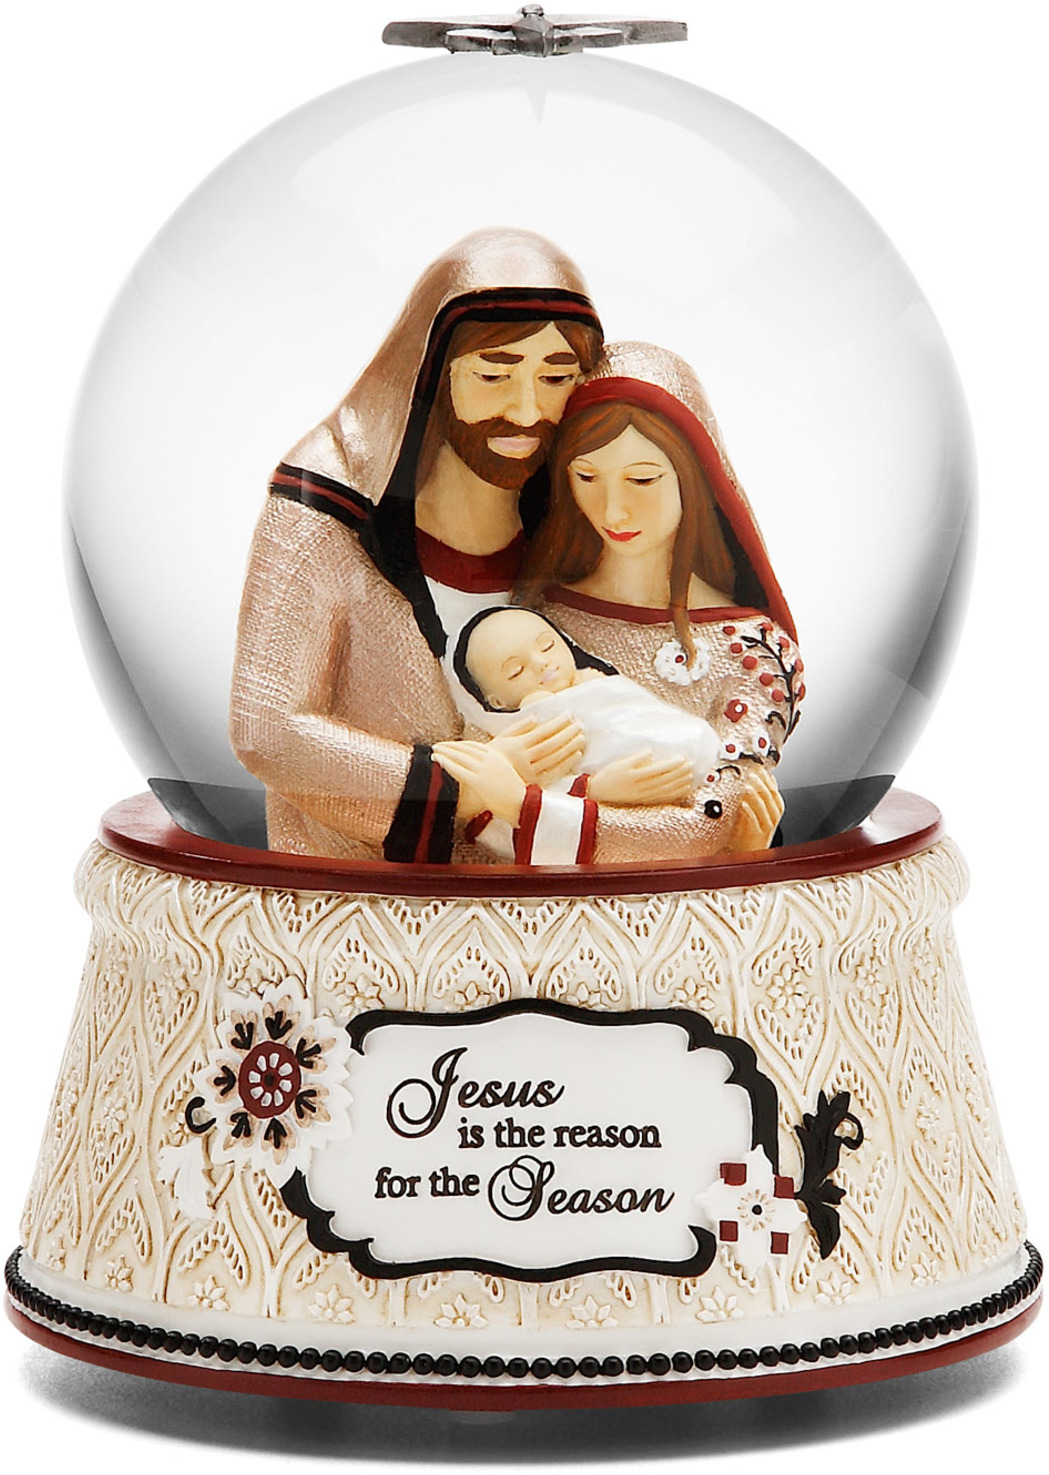 Jesus is the Reason by Modeles Holiday - Jesus is the Reason - Musical Water Globe